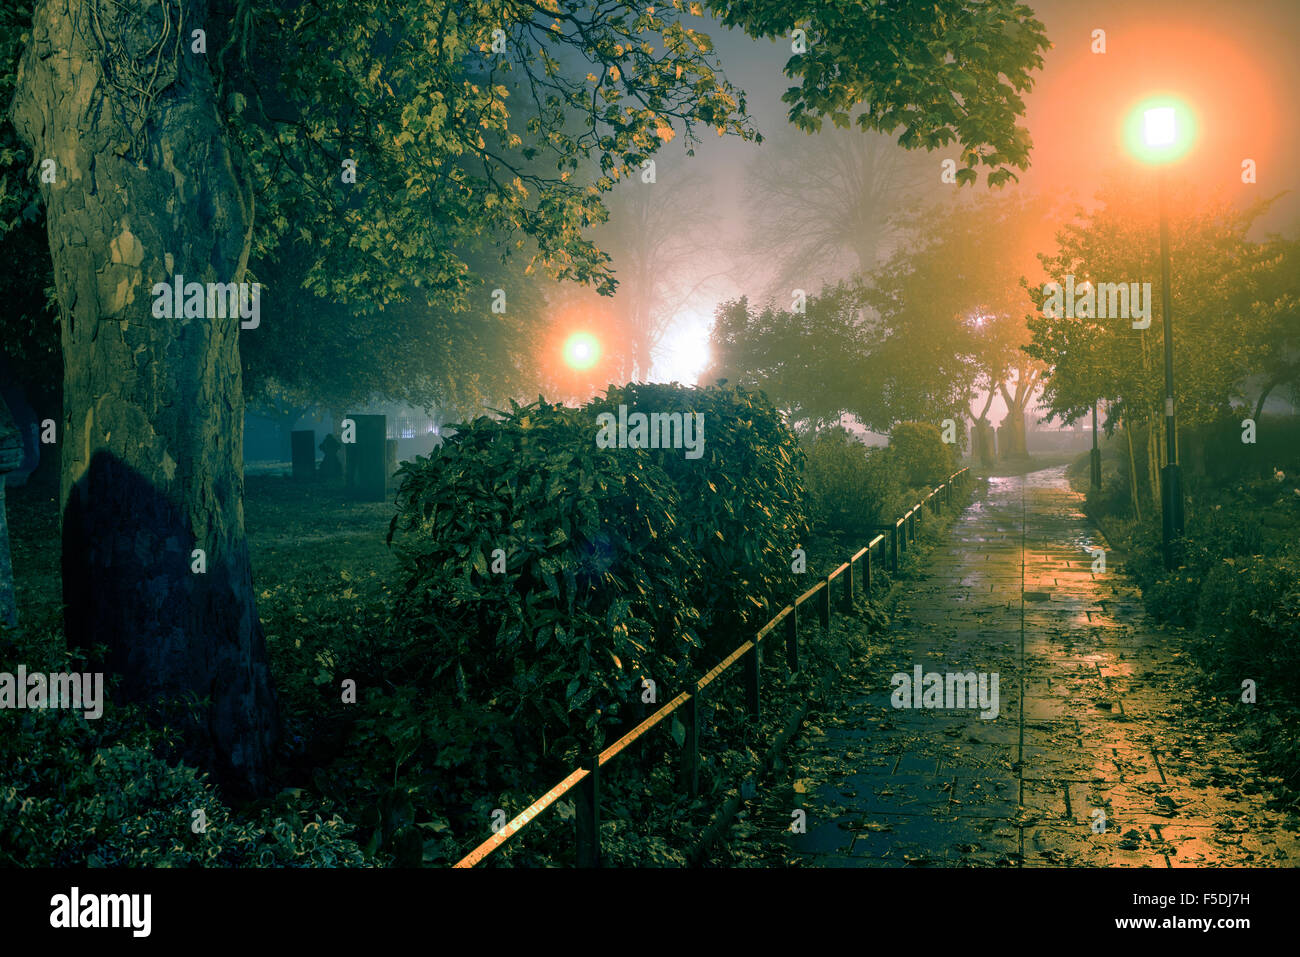 Hucknall, Nottinghamshire, UK:02nd November 2015 .Dense fog remains to night around the east Midlands area, set to clear some time during Tuesday .Hucknall parish church St Mary Magdalene burial place of poet Lord Byron looking Erie in the evening mist . Credit:  IFIMAGE/Alamy Live News Stock Photo